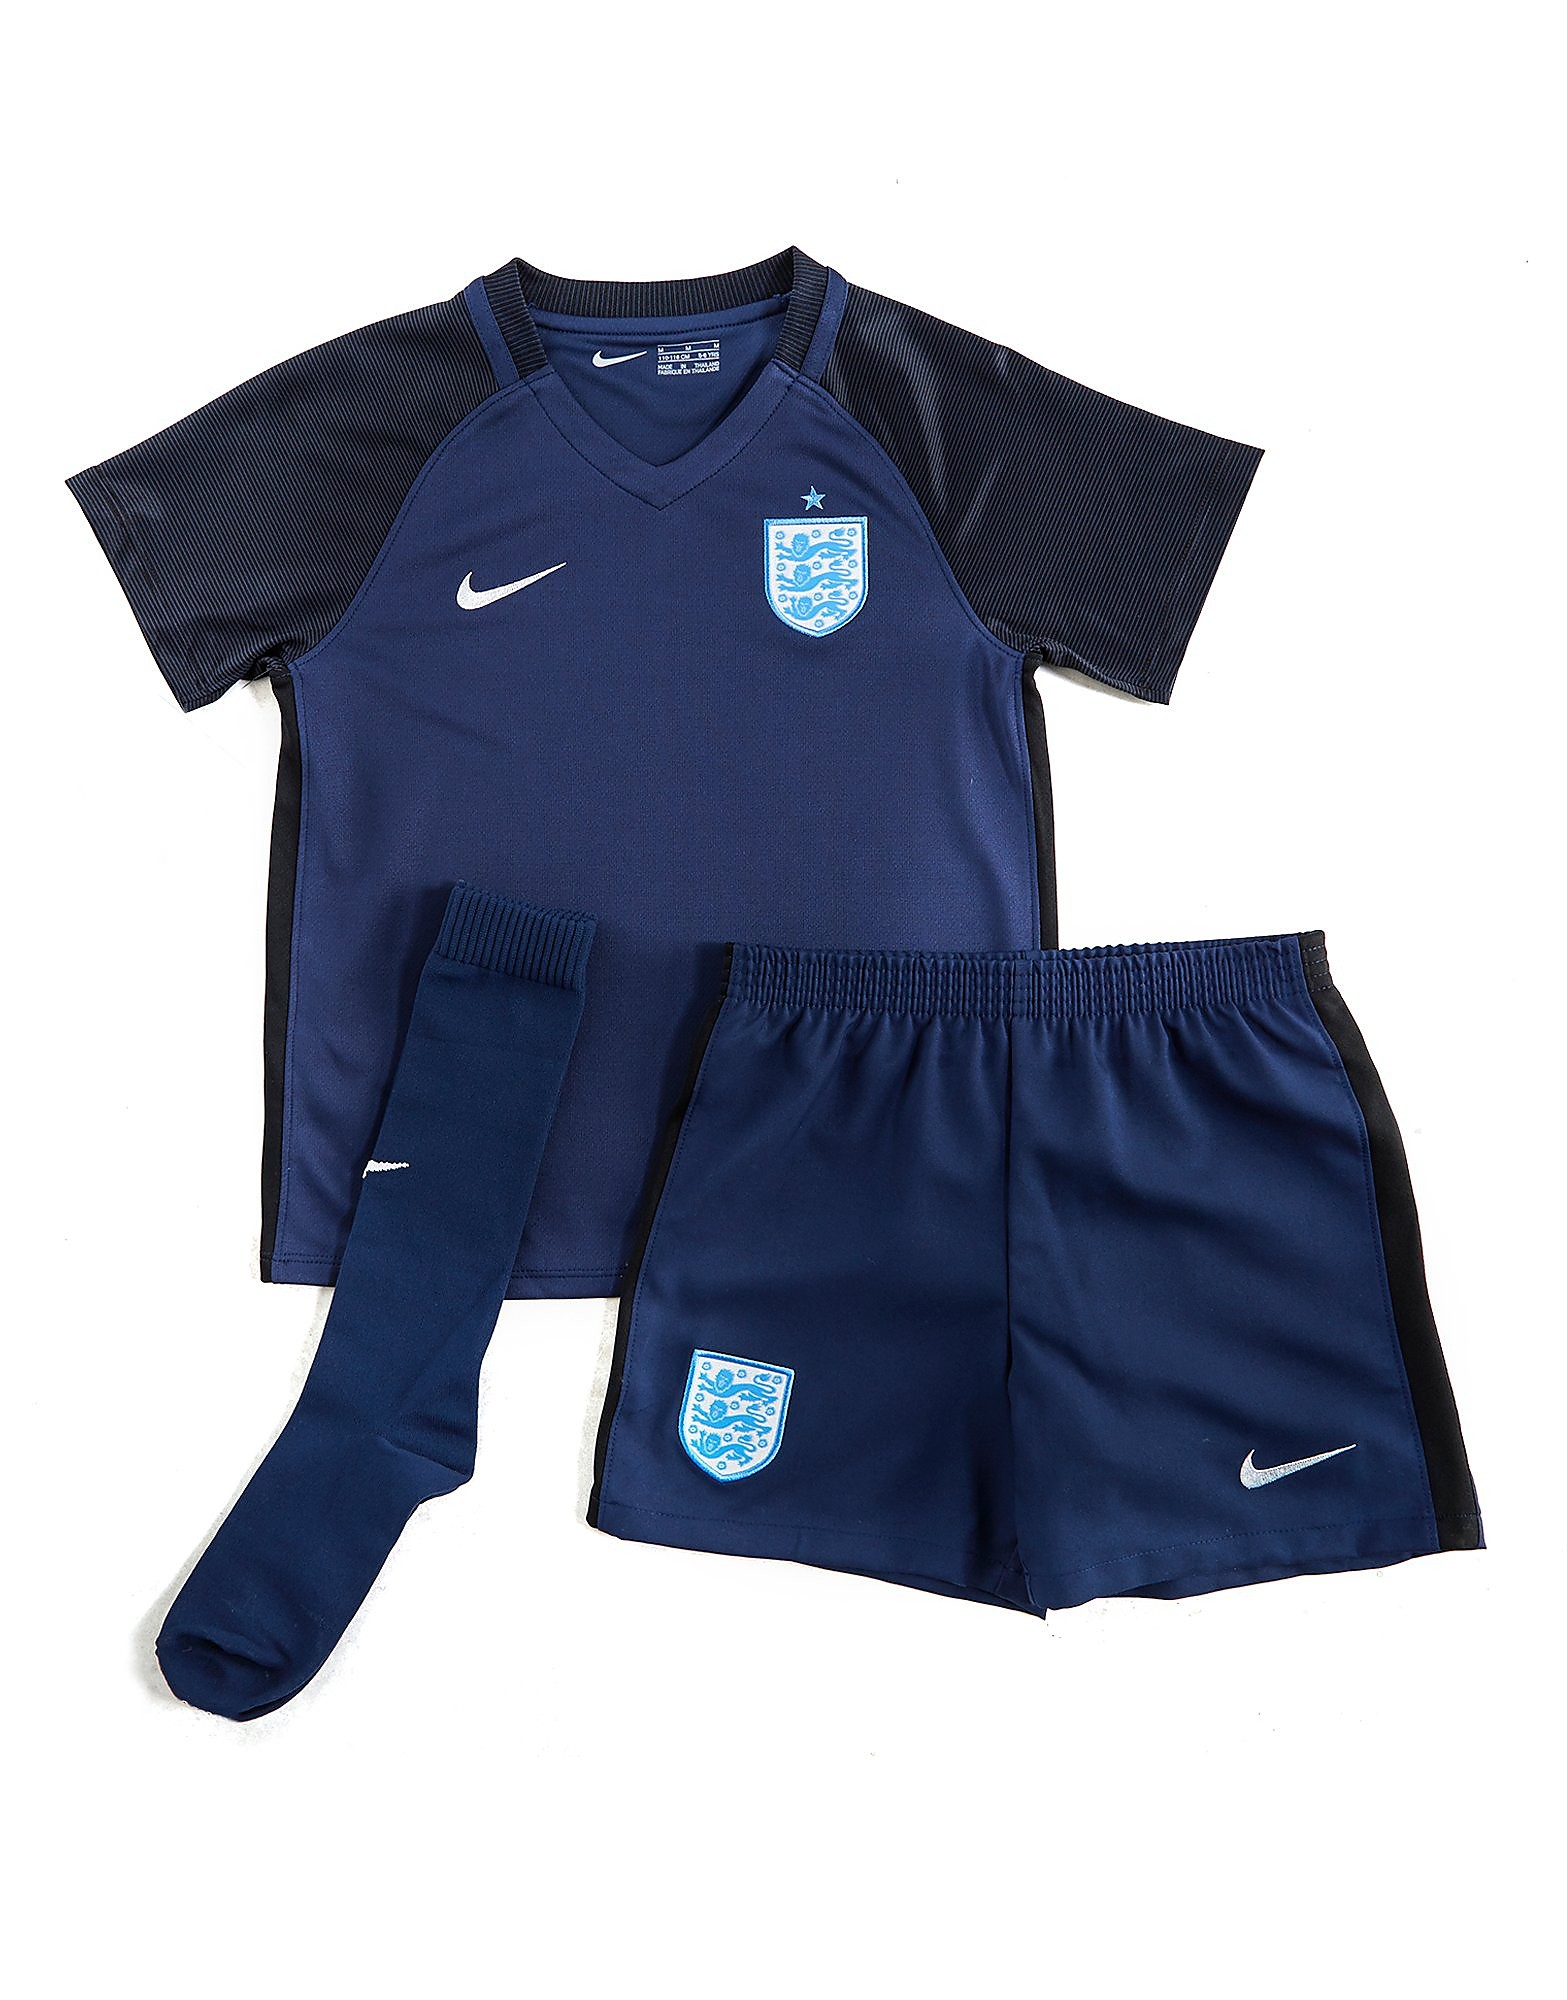 Nike England 2017/18 Children's Away Shirt